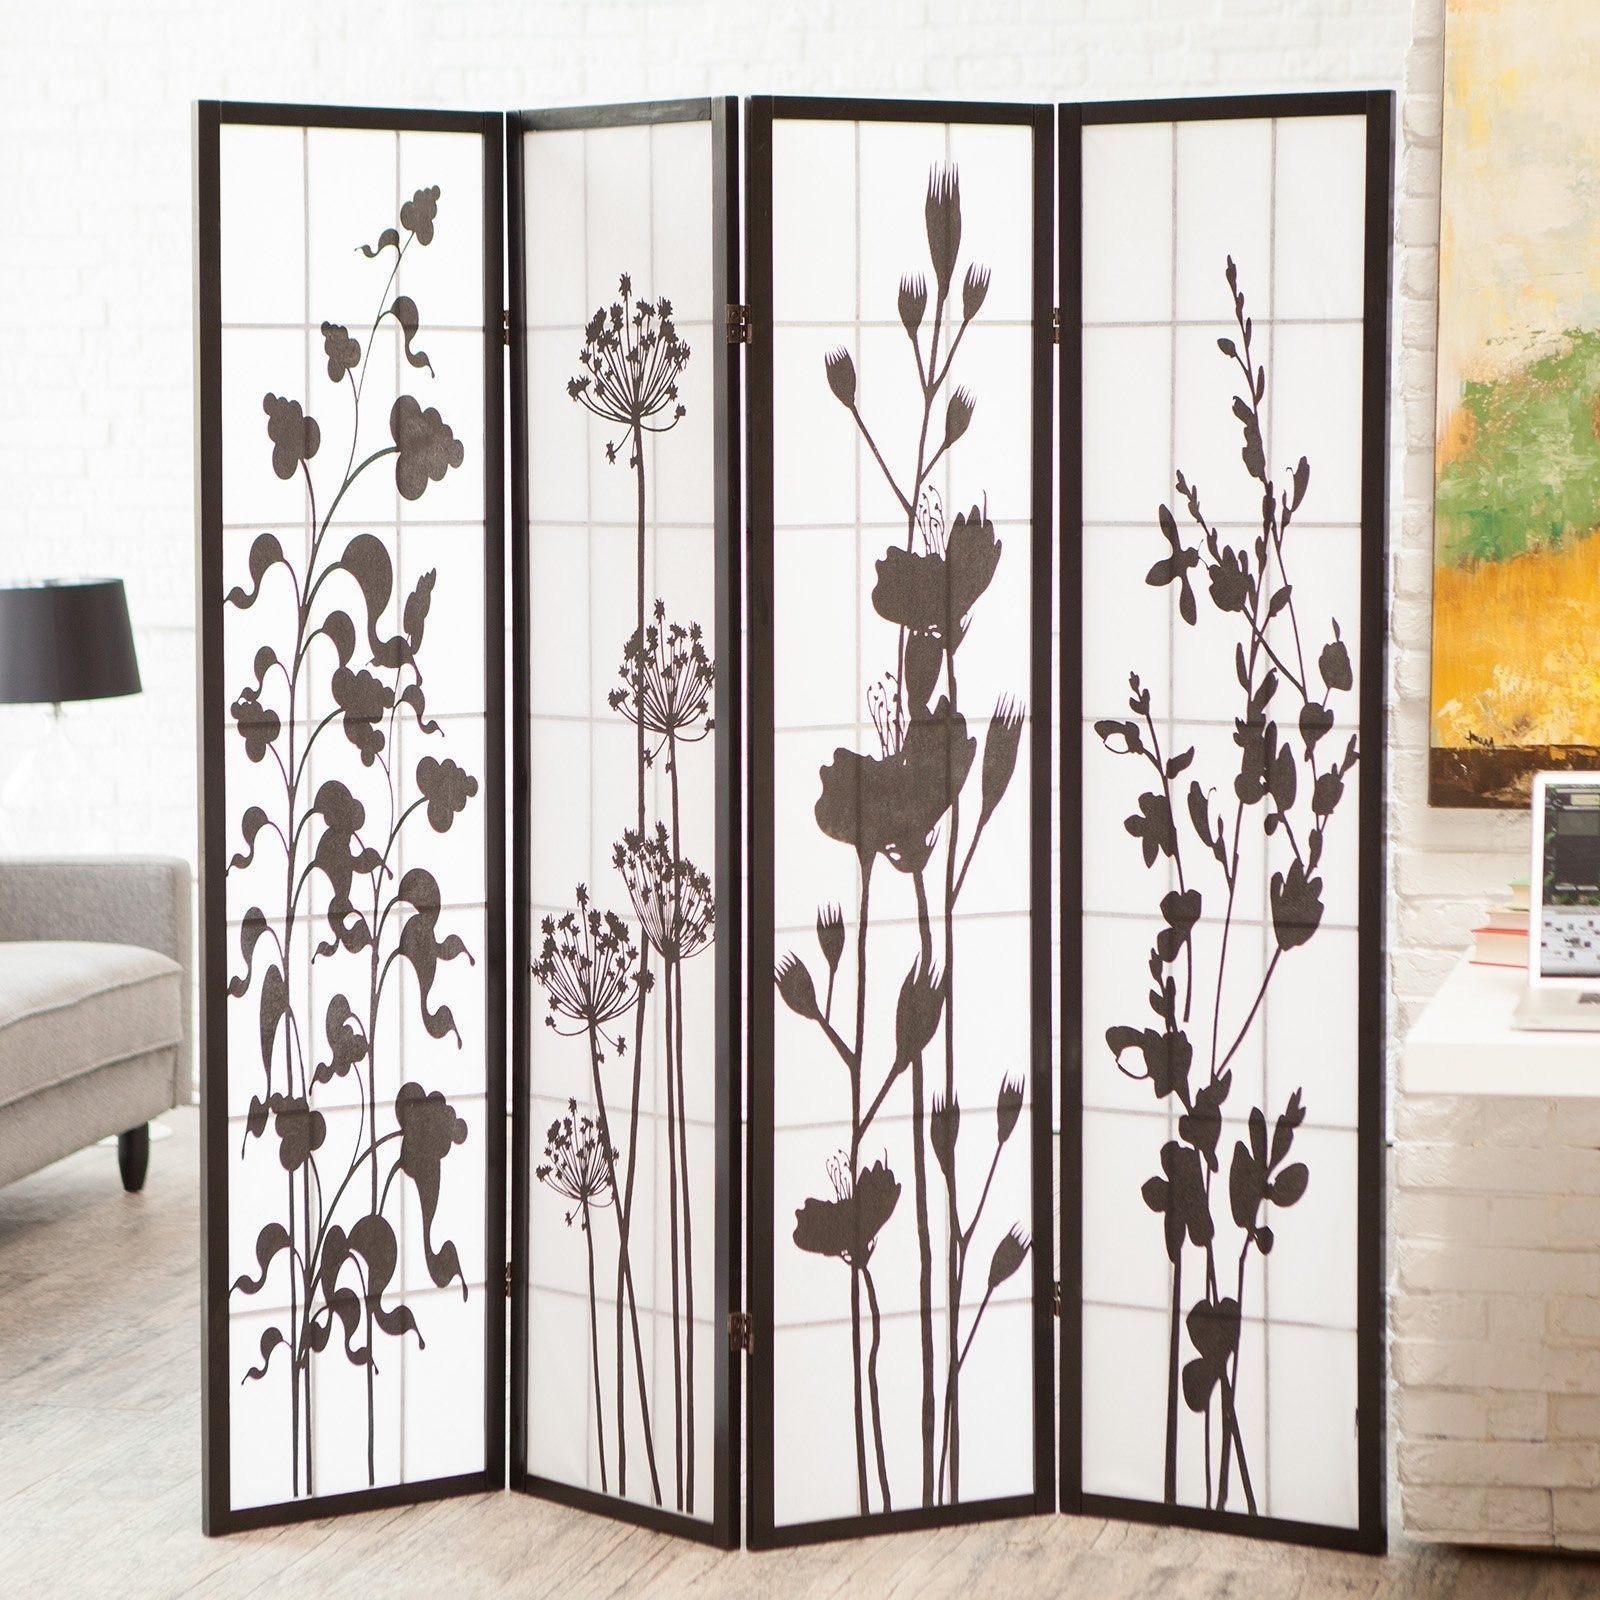 Eyeopening ideas vintage room divider floors room divider kitchen